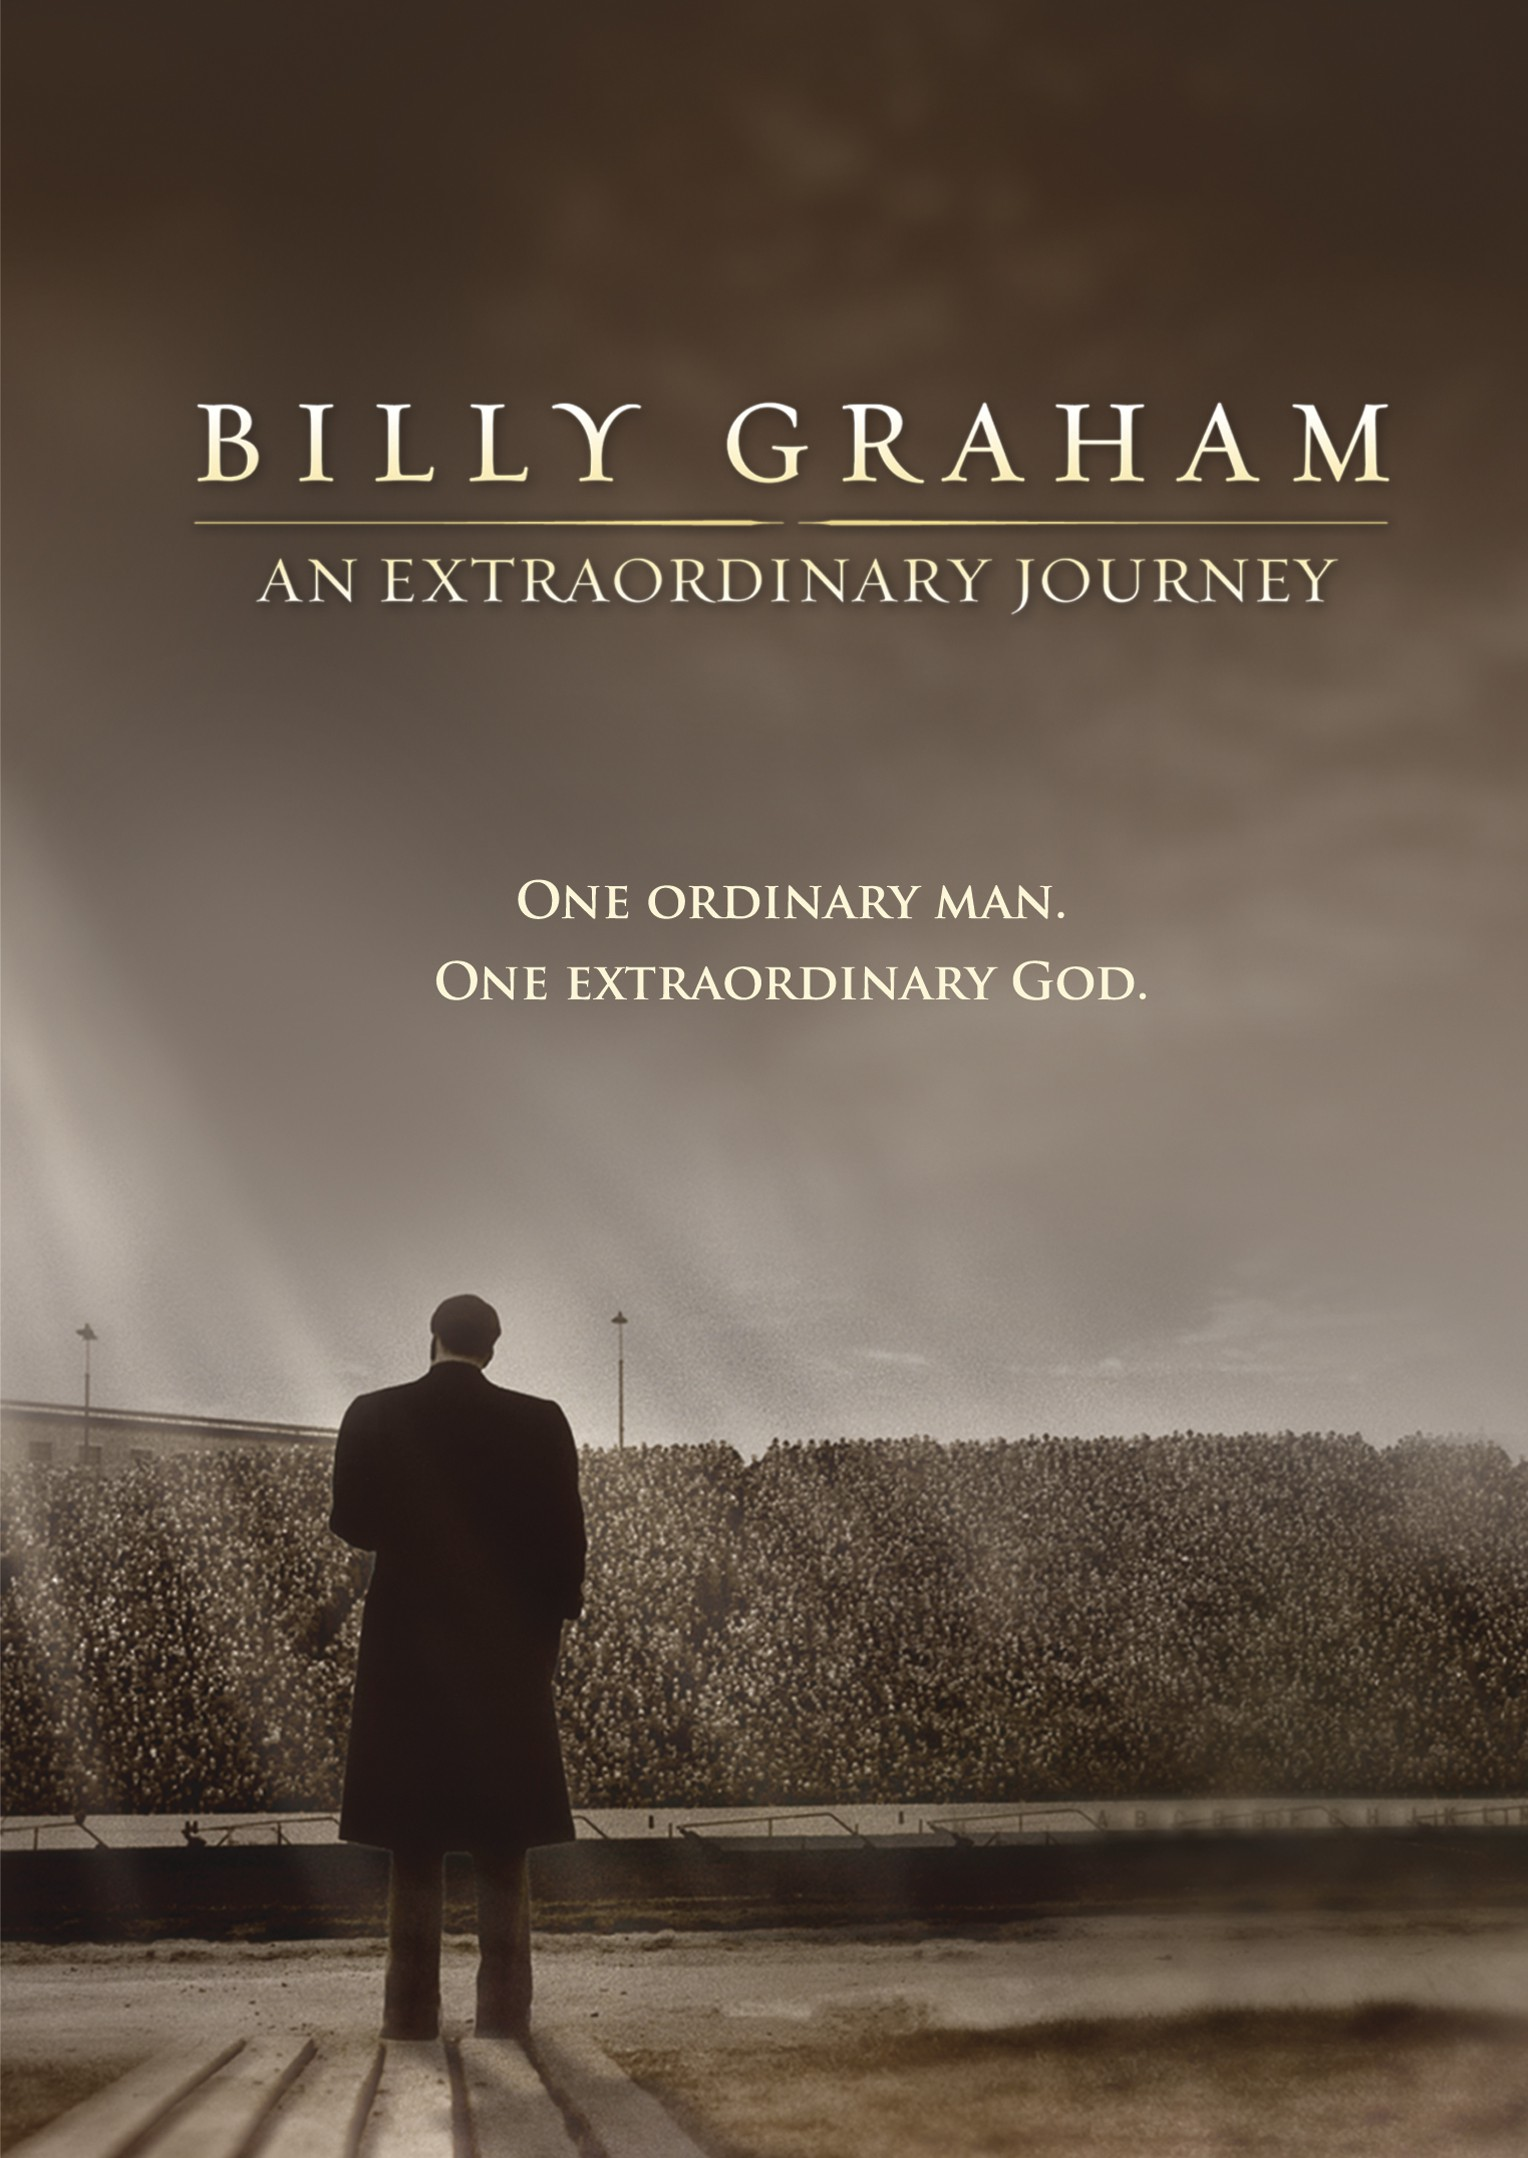 Beyond the Broken Gate: An Ordinary Man's Extraordinary Journey